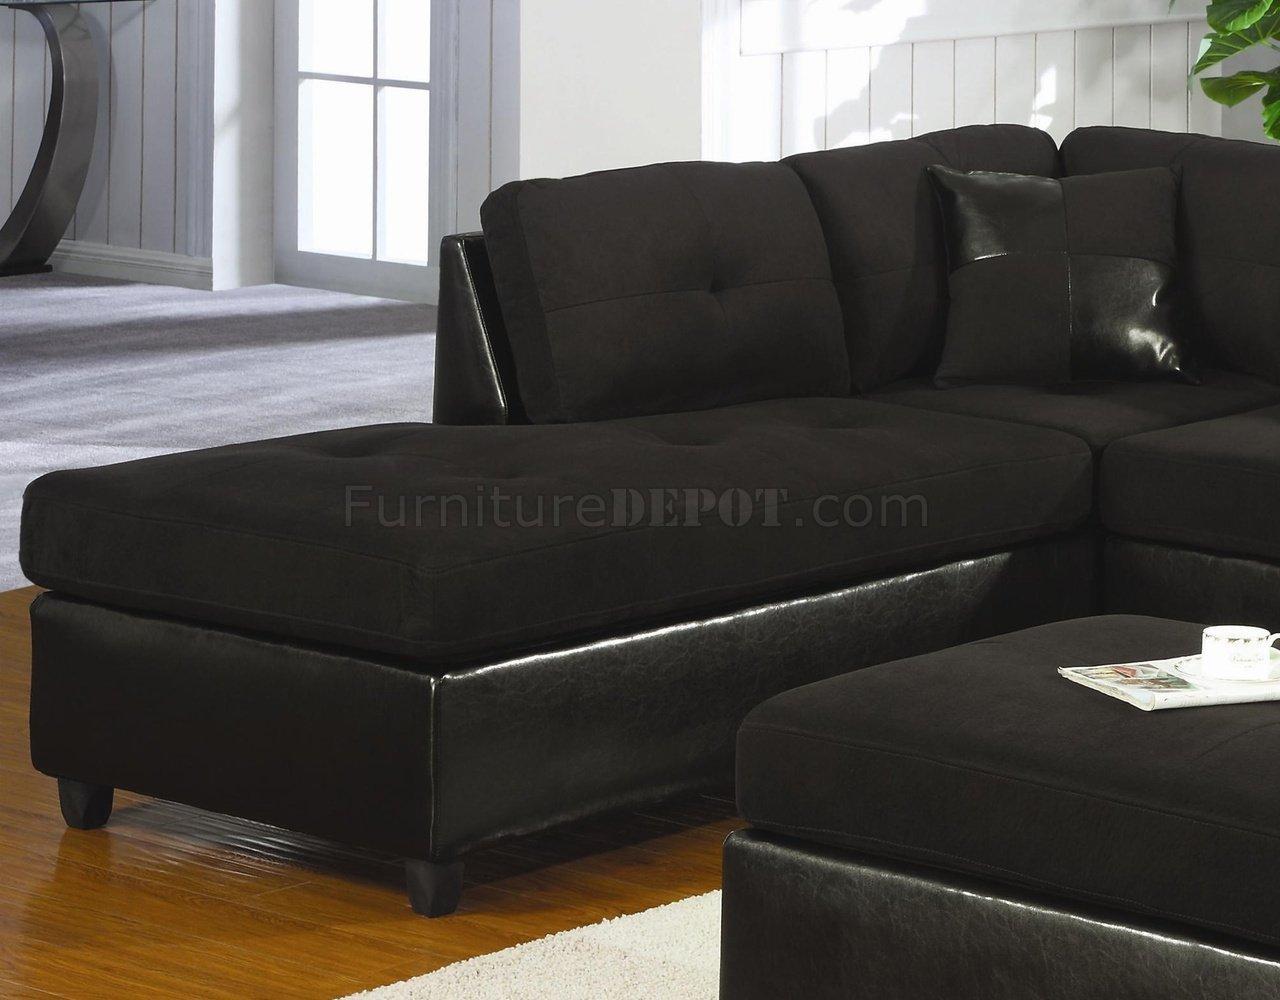 Microfiber & Faux Leather Contemporary Sectional Sofa 500735 Black With Black Microfiber Sectional Sofas (Image 12 of 20)